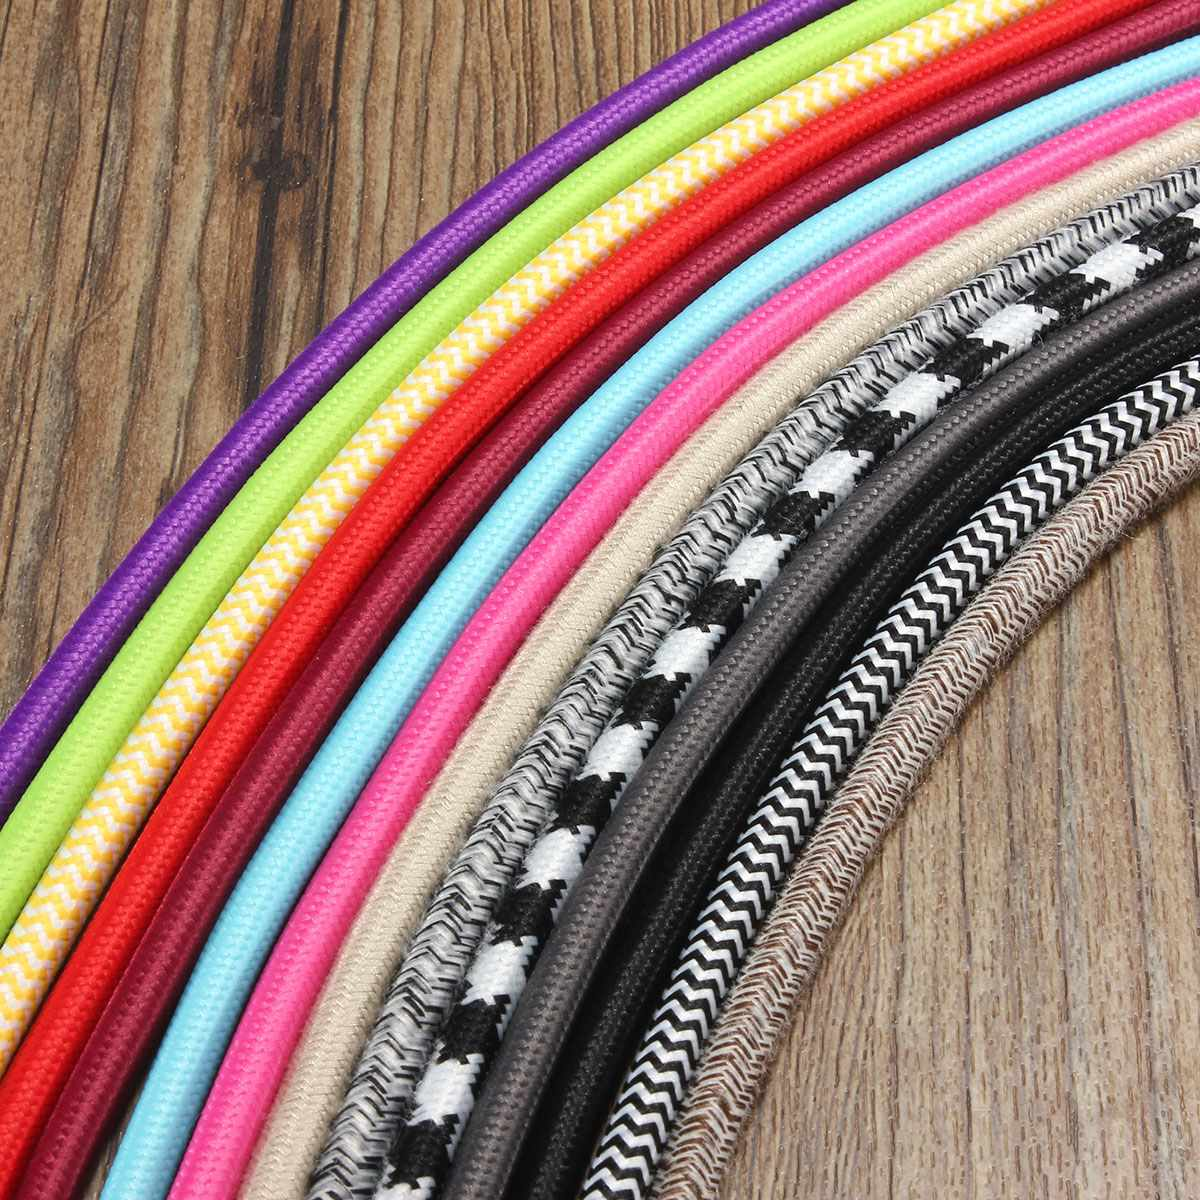 3 Meter 2 Cord 0.75cm Multicolor Retro Vintage Twist Braided Fabric Light Cloth Cable Electric Wire Chandelier Pendant Lamp Wire(China (Mainland))